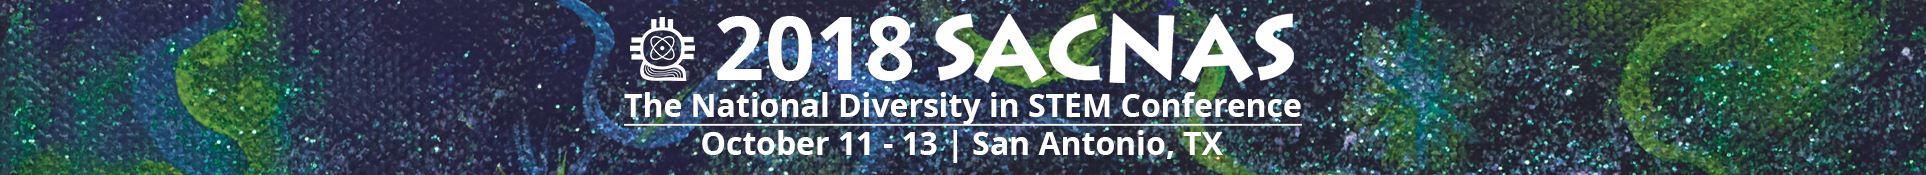 Event Build: 2018 SACNAS - The National Diversity in STEM Conference